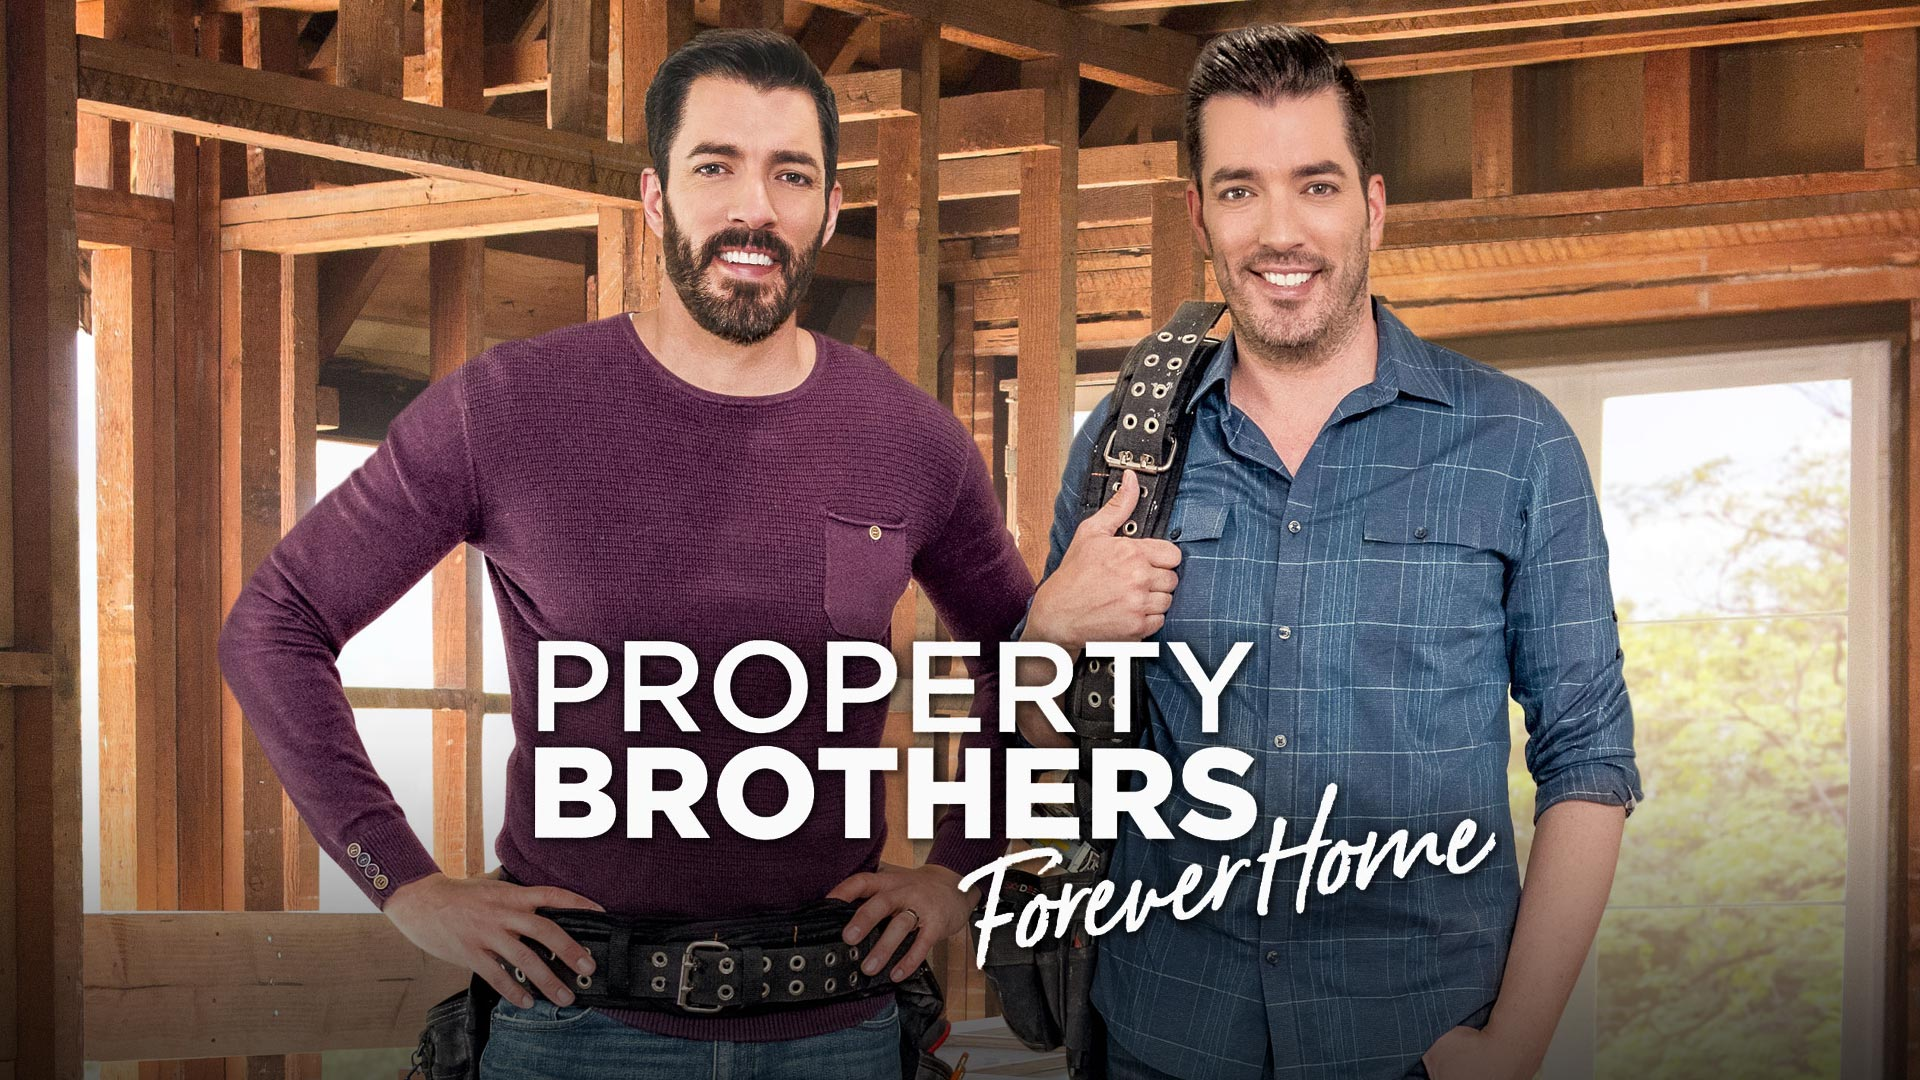 Property Brothers: Forever Home, Season 1